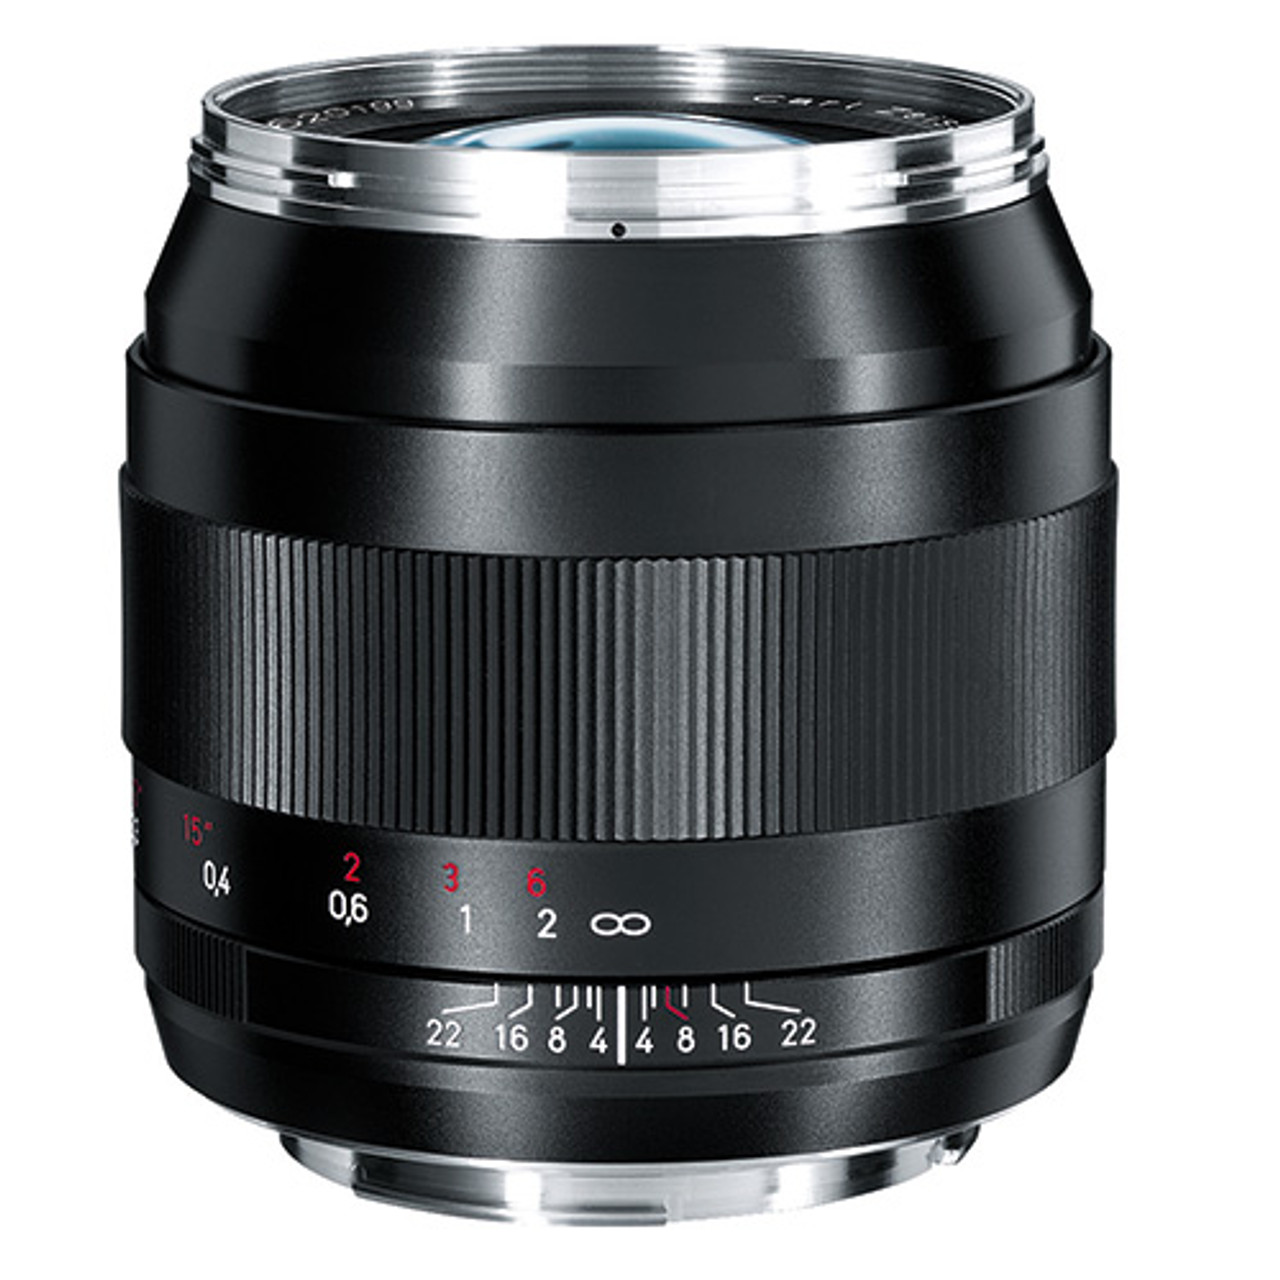 Zeiss Distagon T* 2/28 ZE for Canon EF